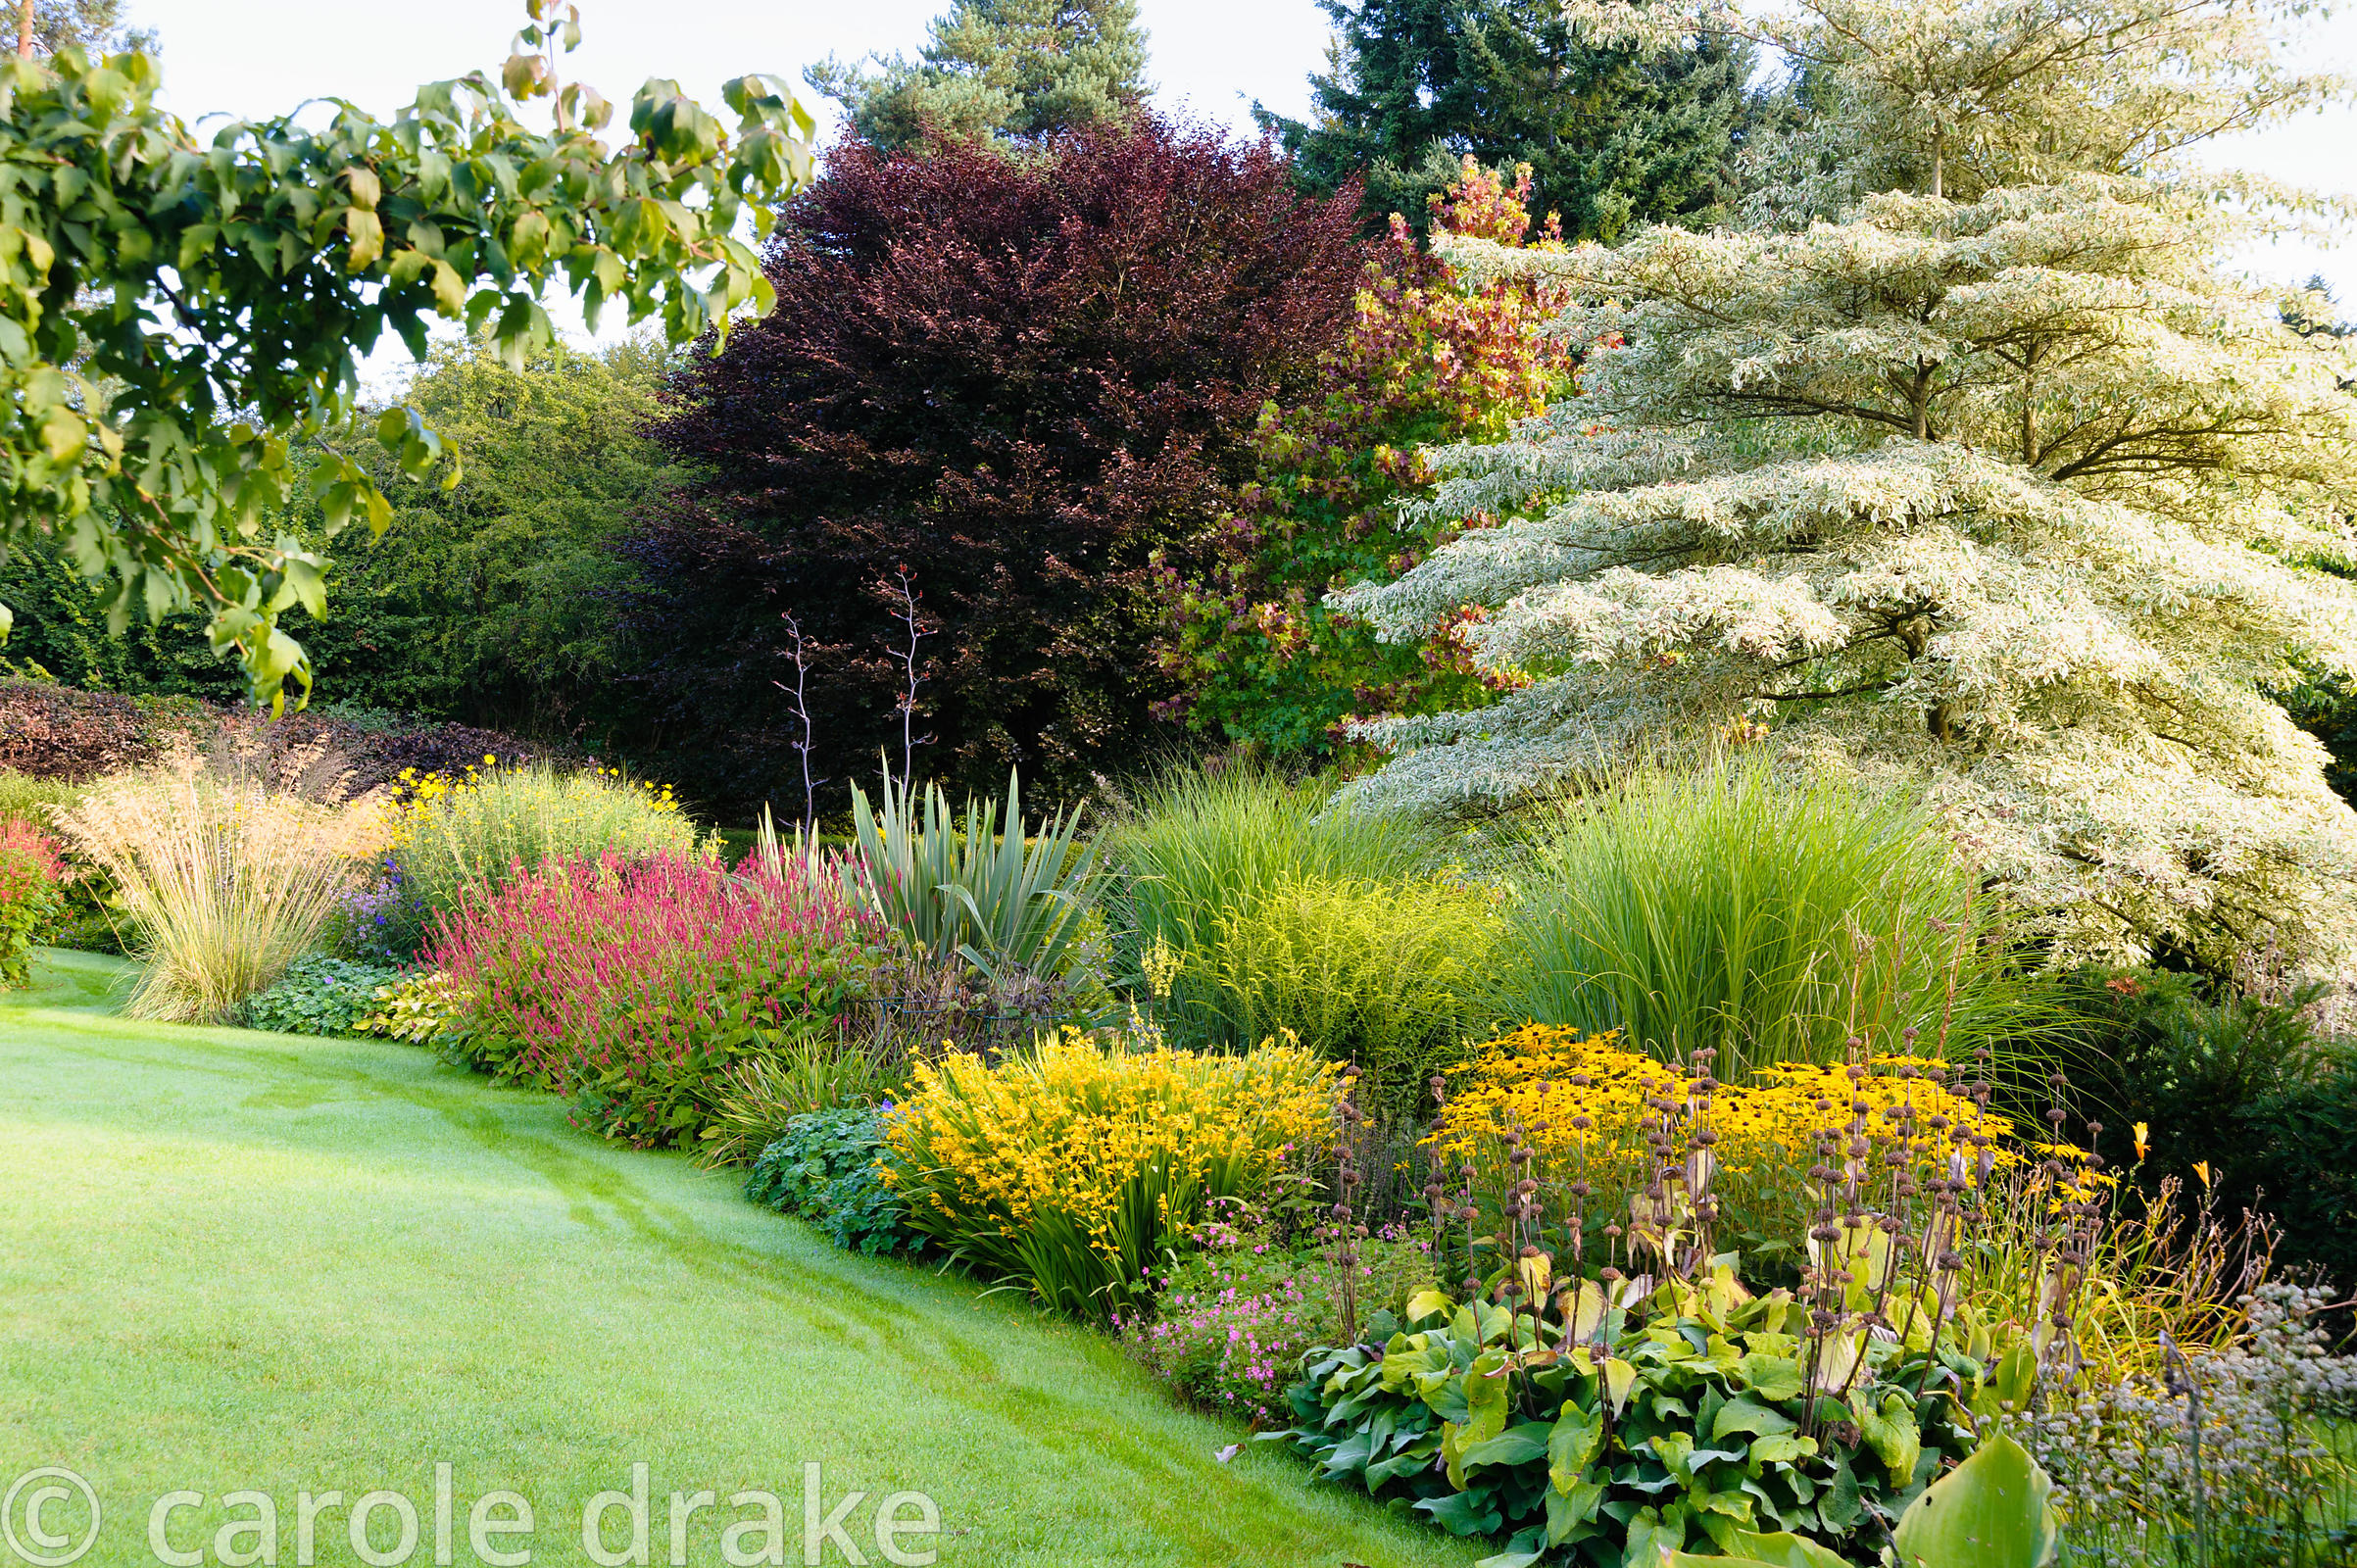 Border with wedding cake tree, Cornus controversa 'Variegata', above grasses and late season perennials including Rudbeckia f...